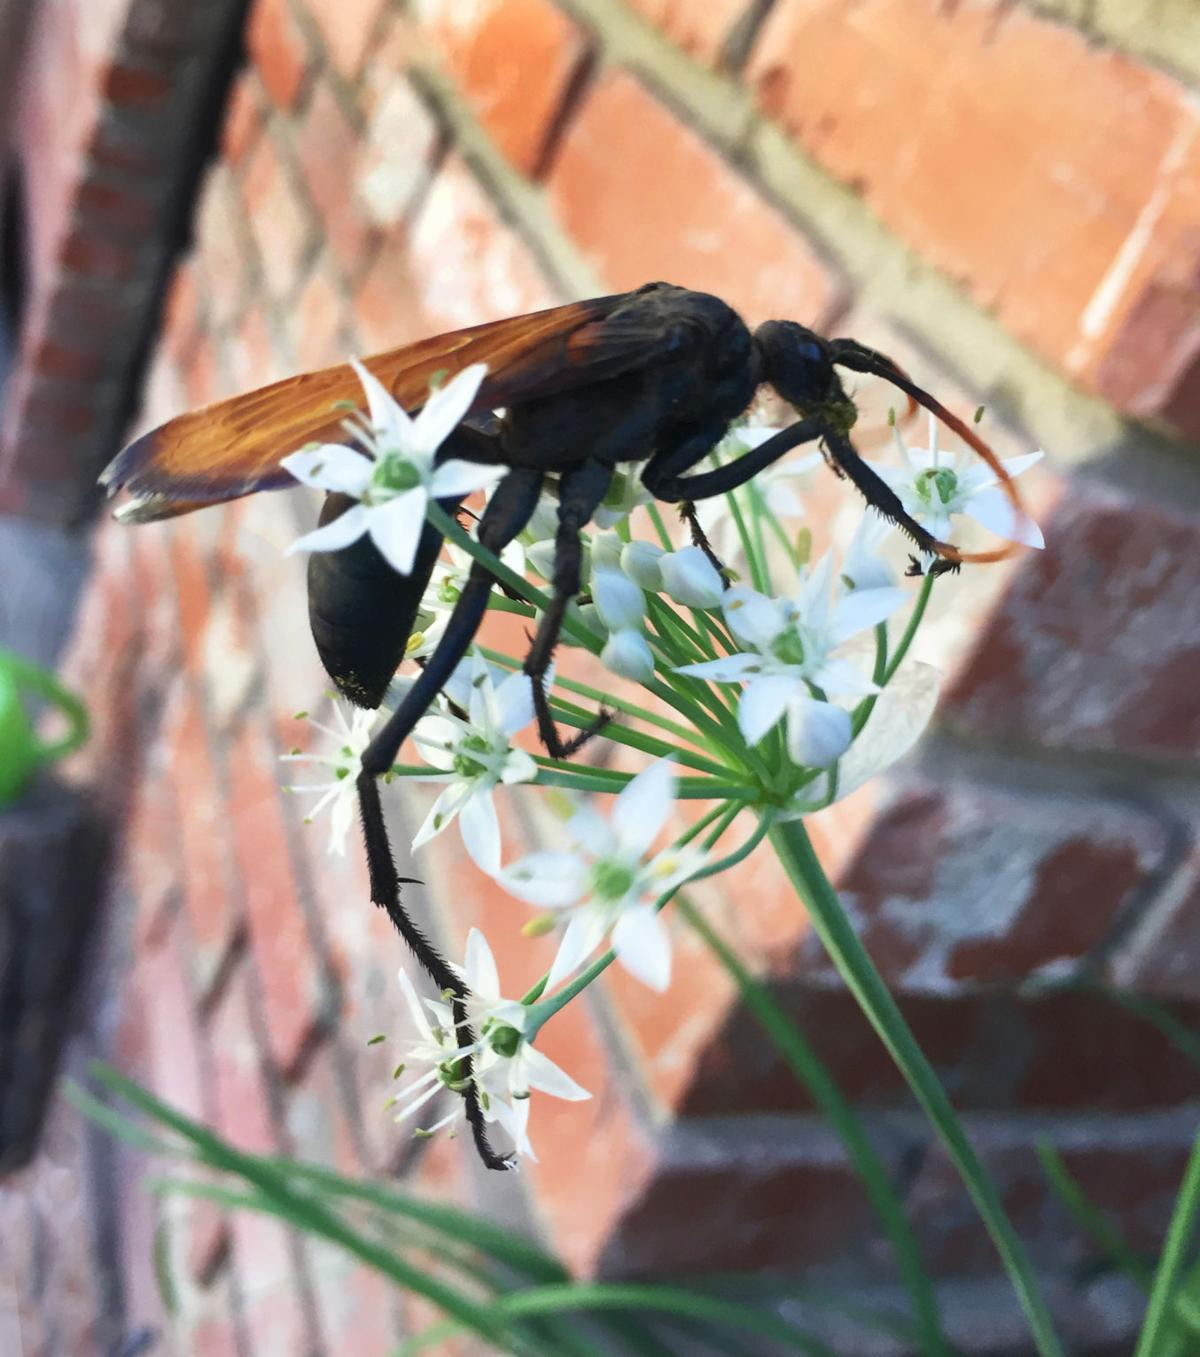 natural sightings tarantula hawks deliver a painful sting